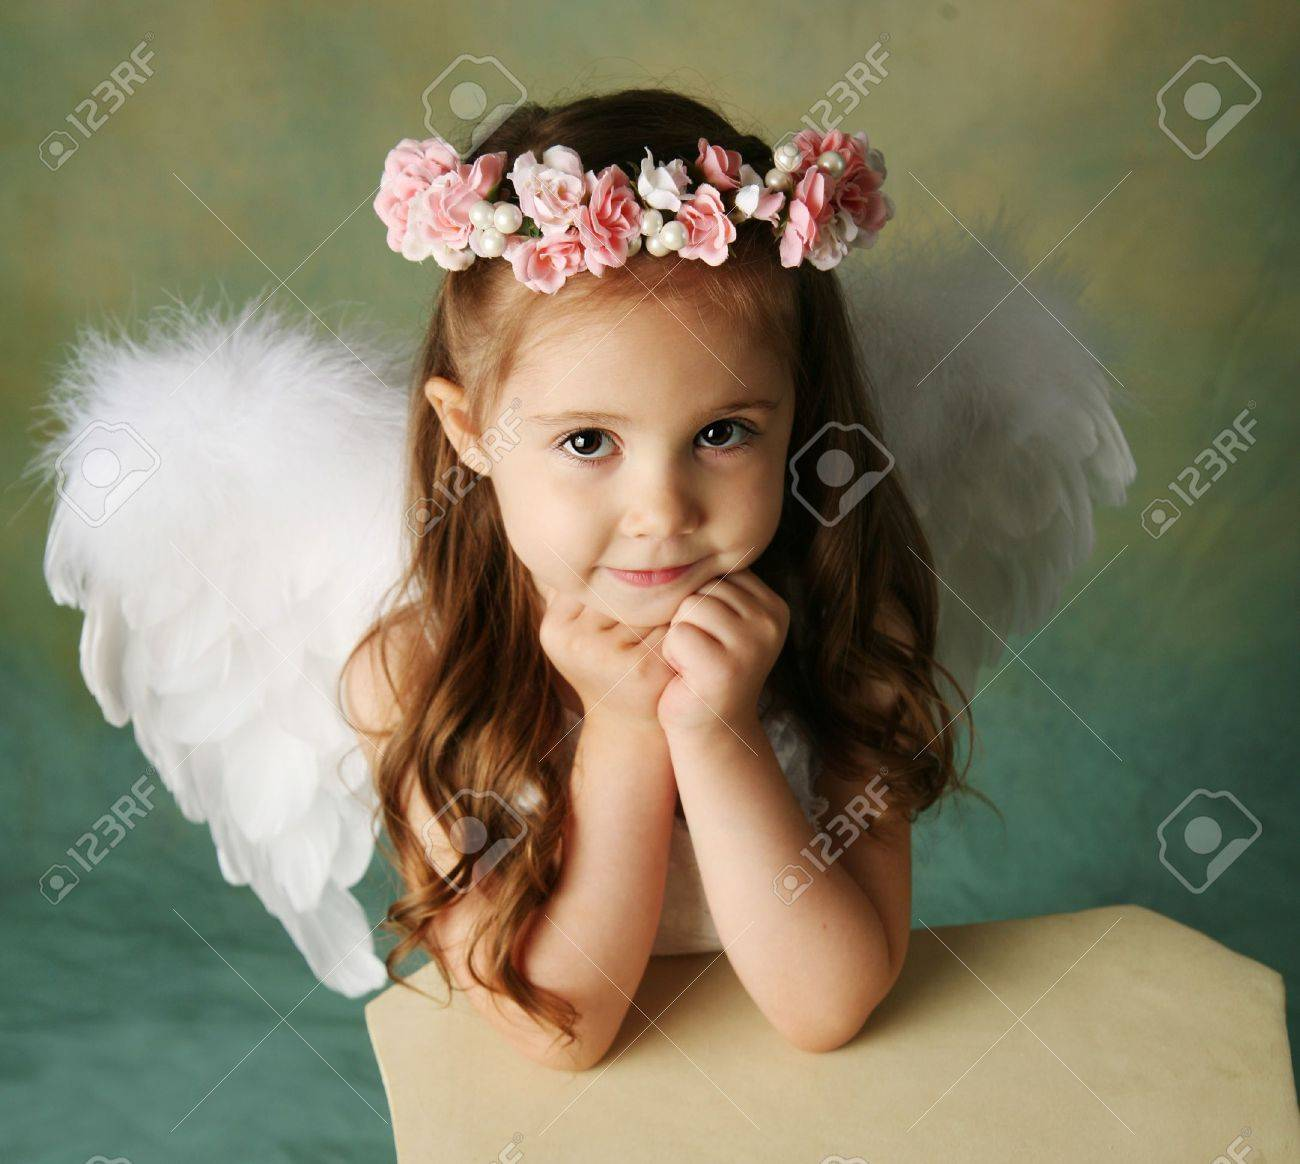 Beautiful Young Girl Wearing Angel Wings And Flower Halo With